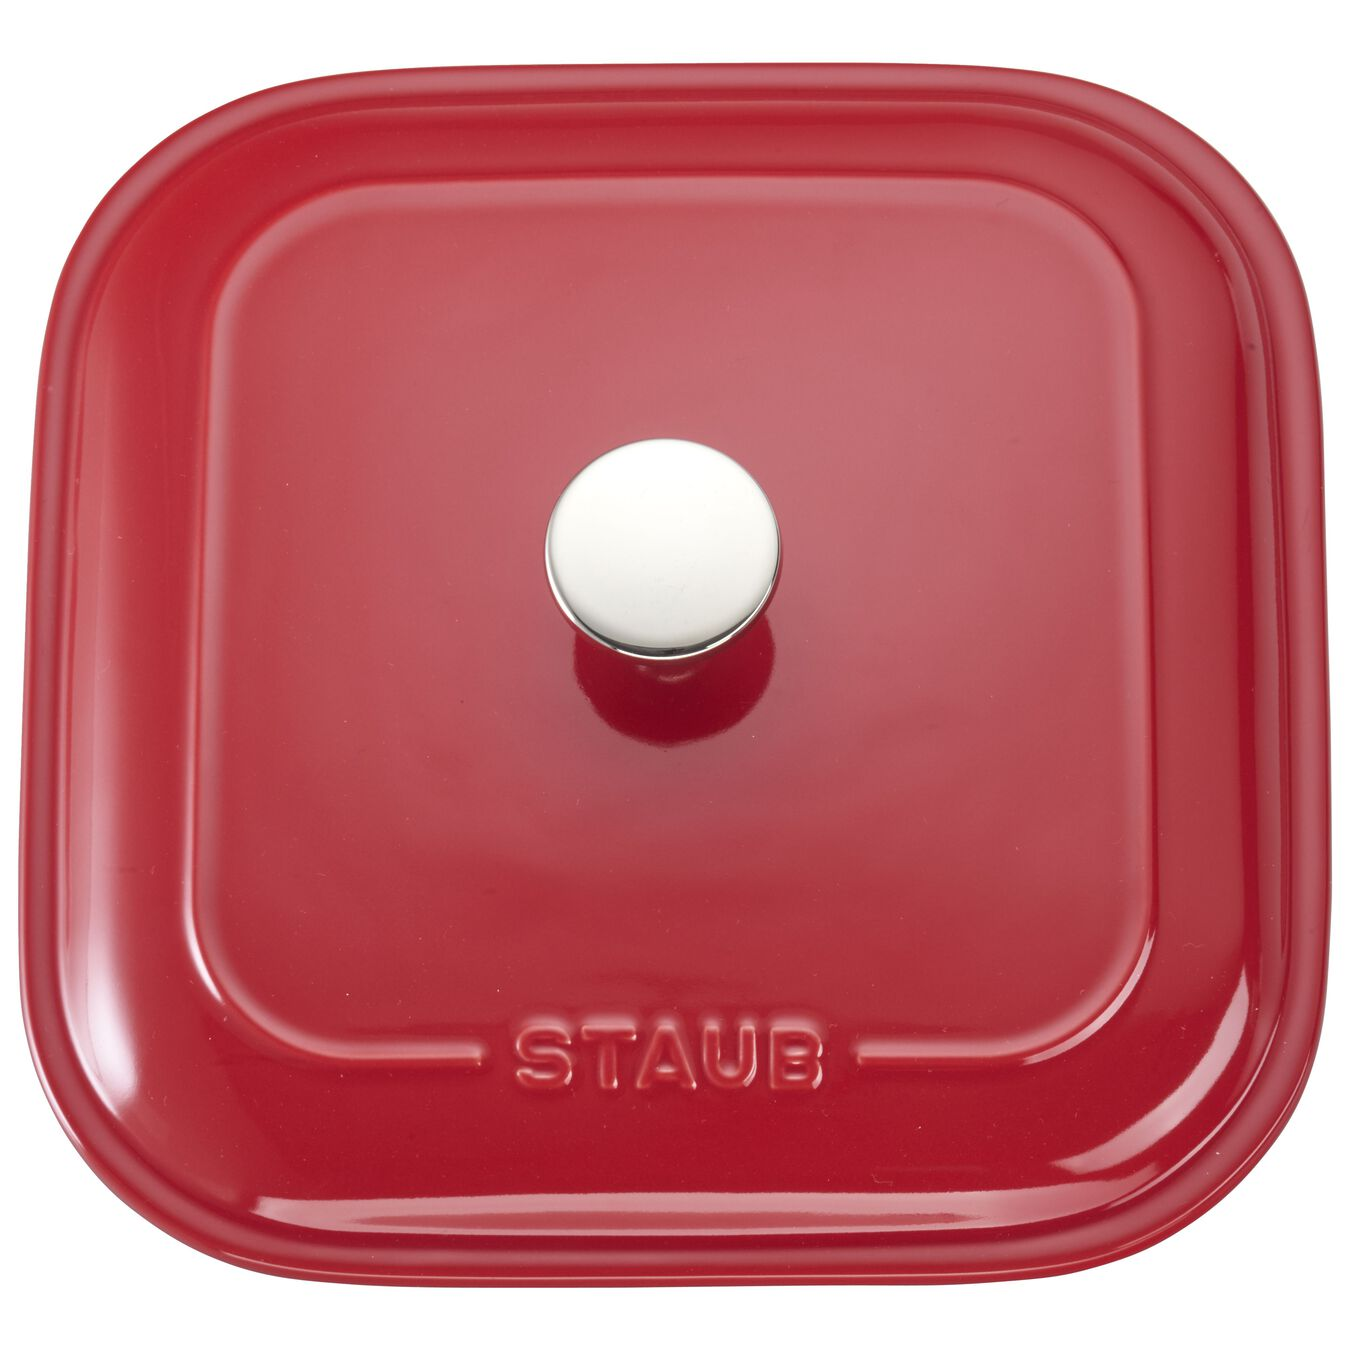 9-inch X 9-inch Square Covered Baking Dish - White,,large 5